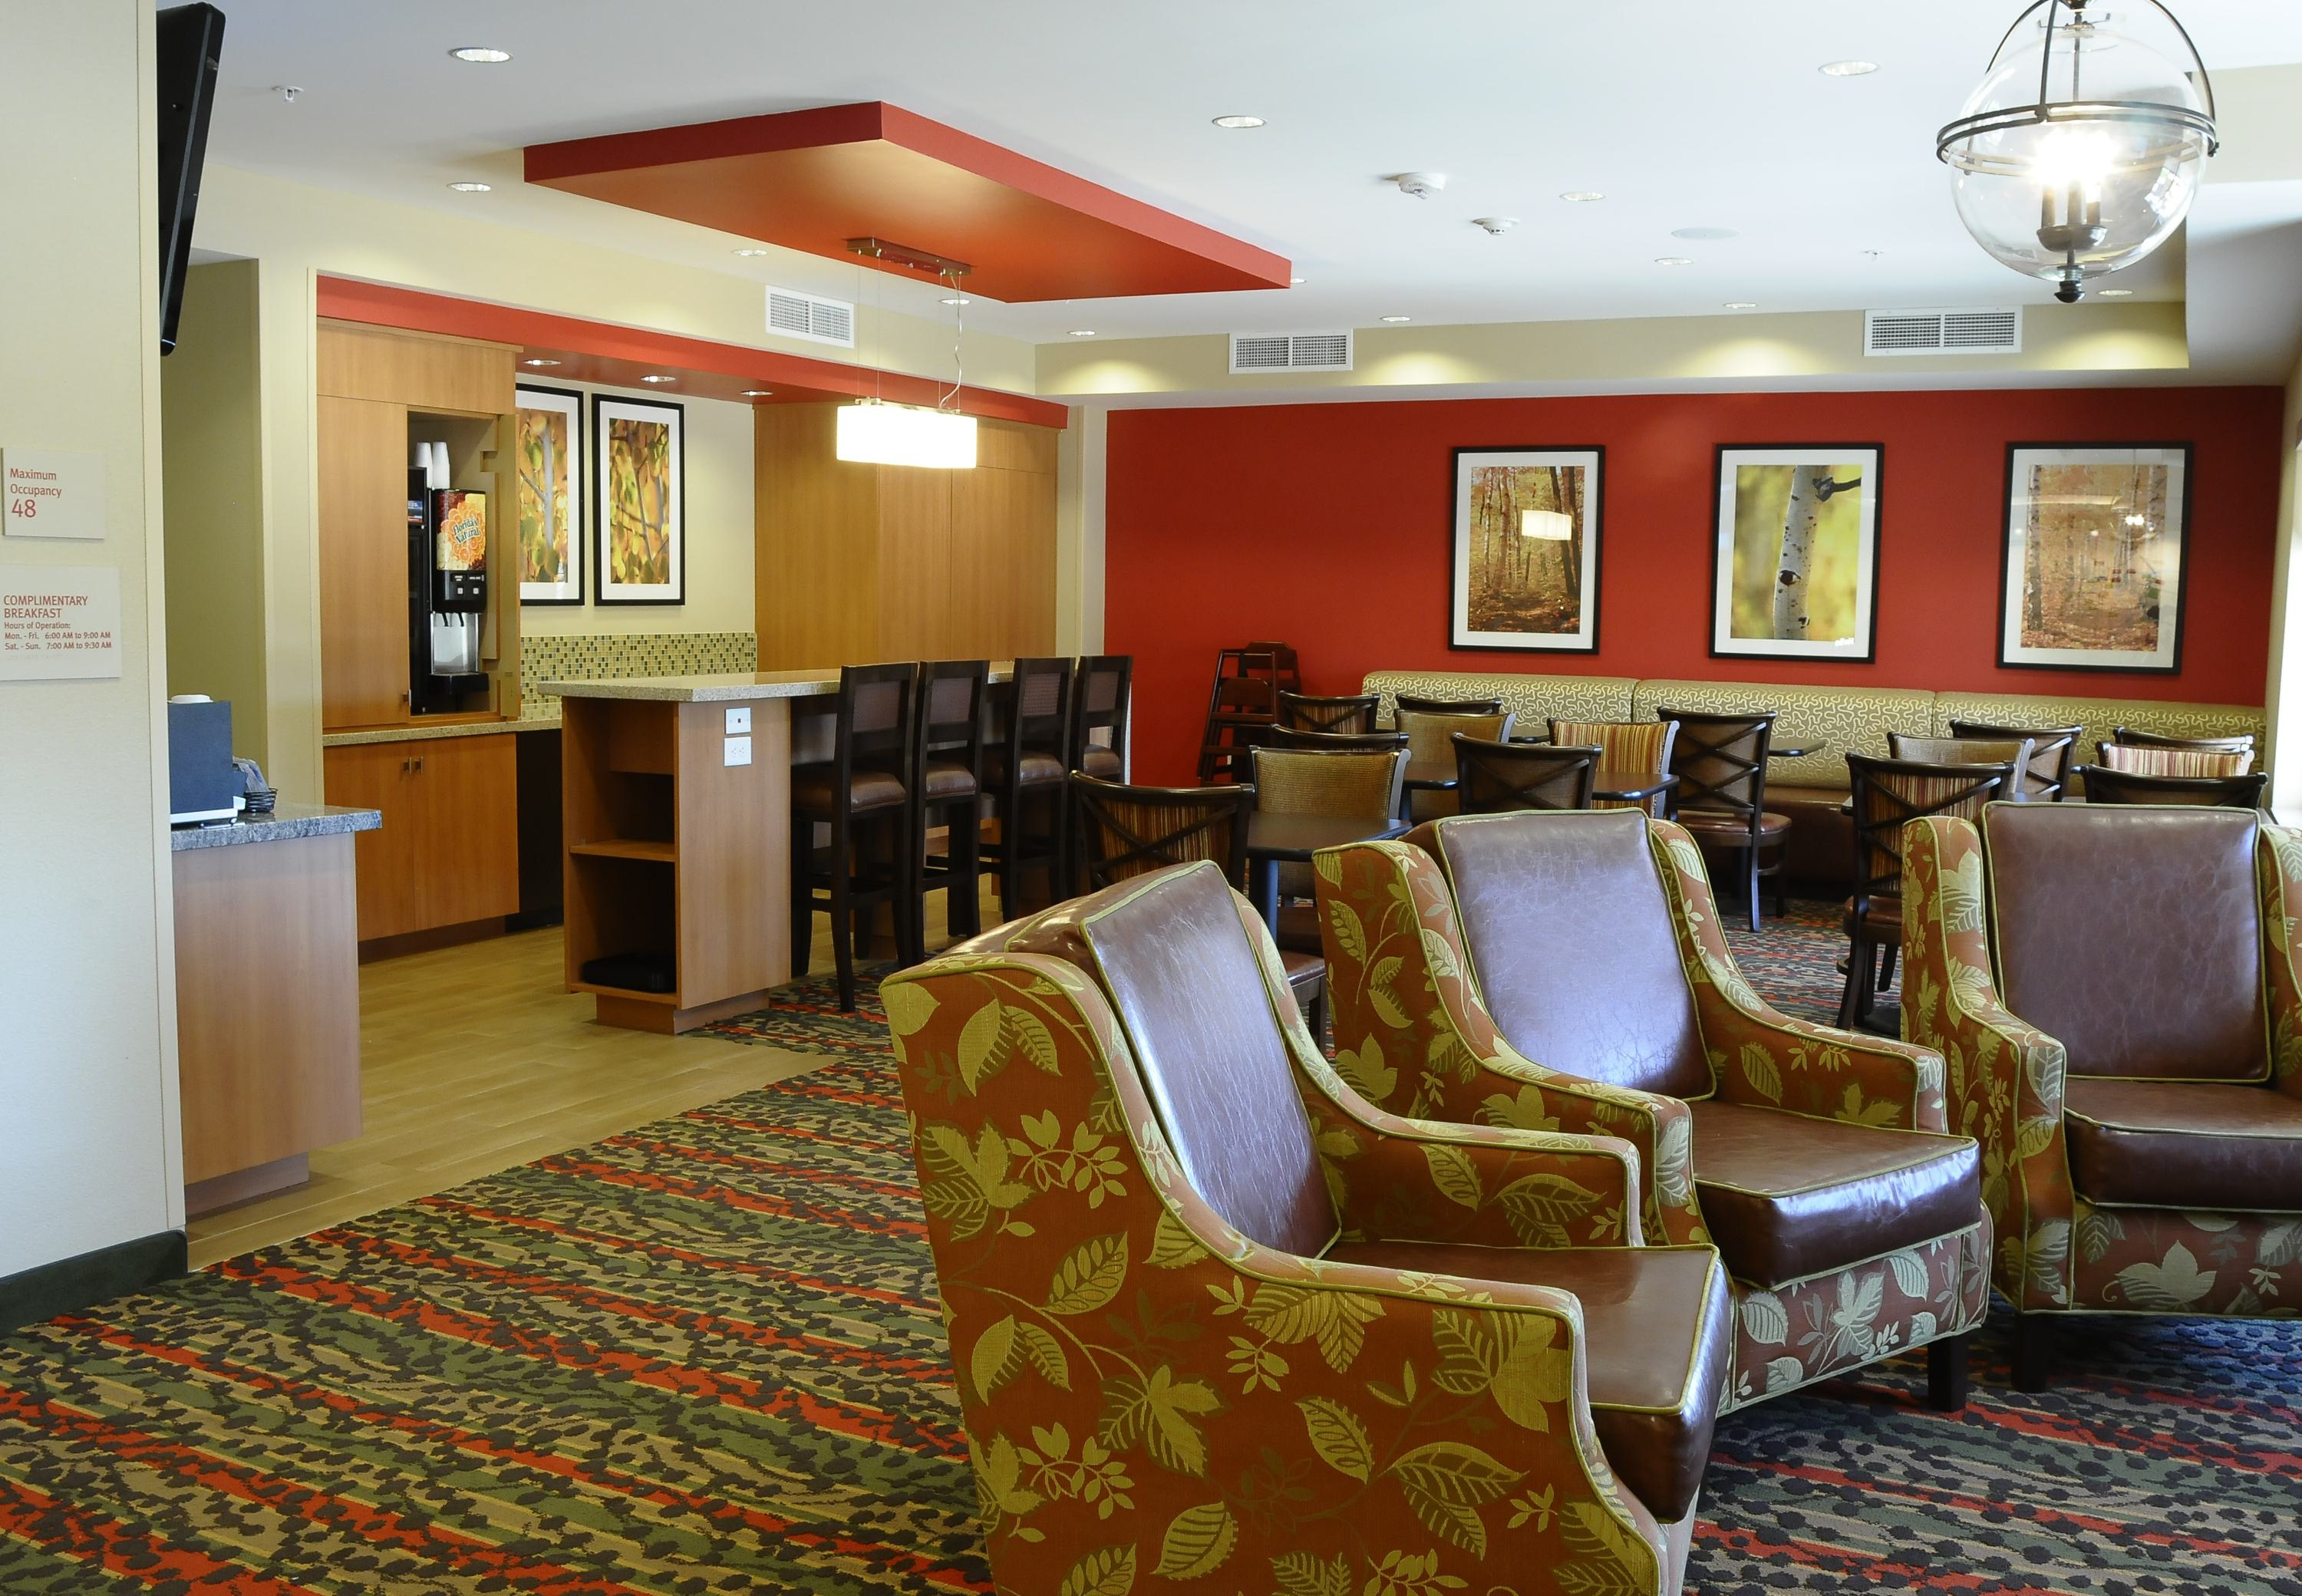 Contacting Marriott Customer Service Center. The Marriott Hotel is a well-known hotel with locations all over the world. The official website provides visitors with a breakdown of the Rewards program, available rooms and current specials and deals for travelers.